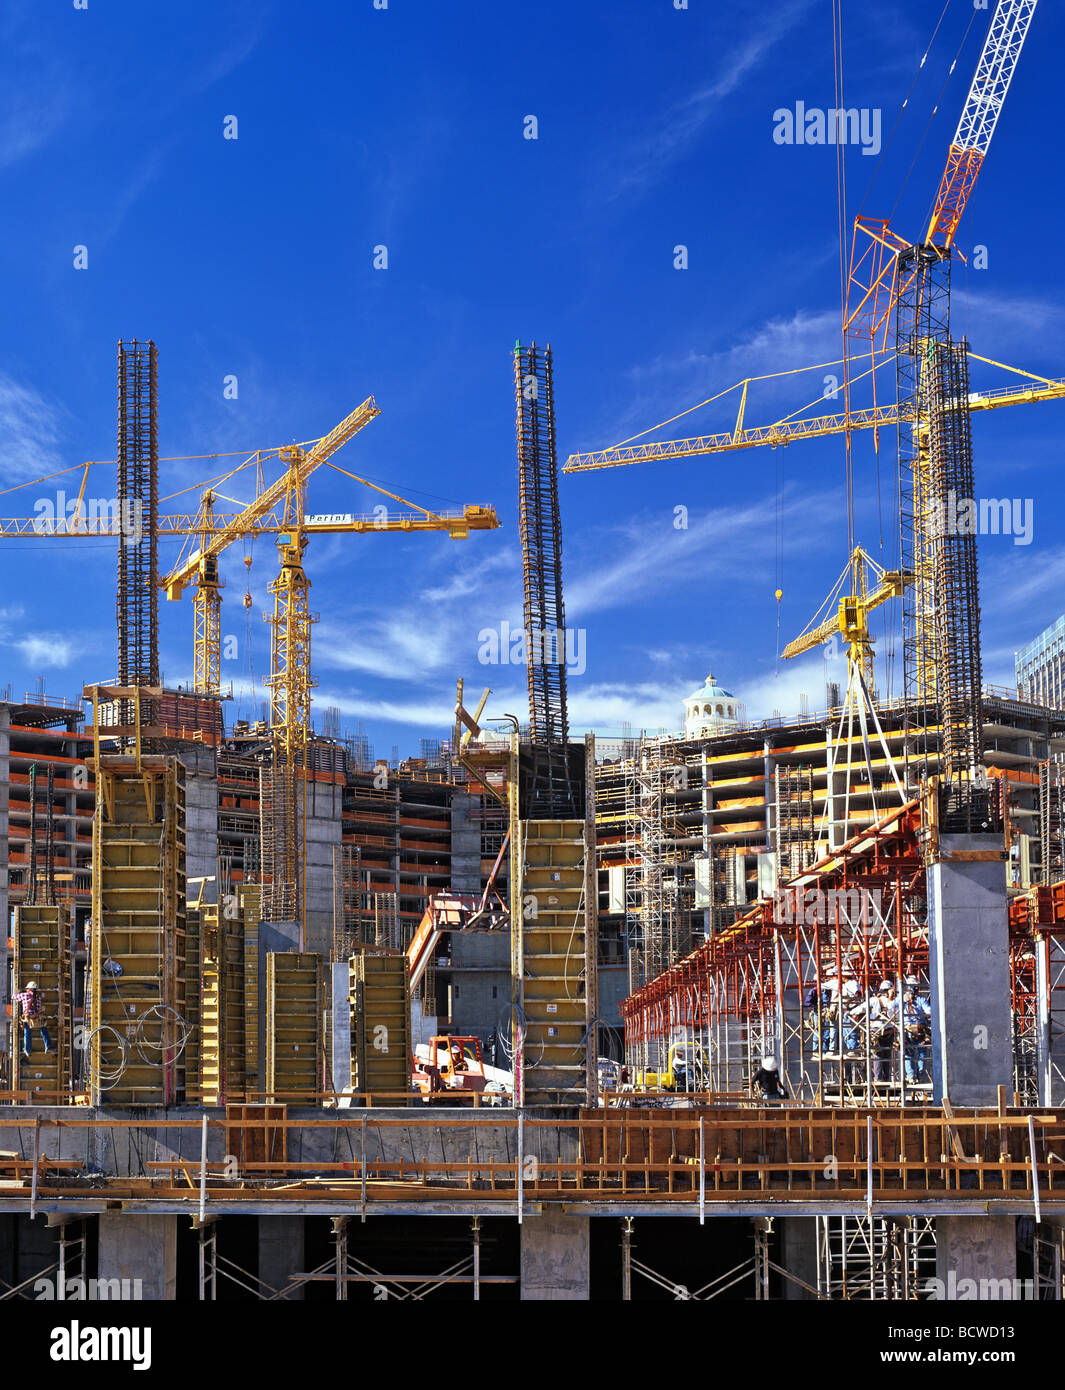 Cranes, large construction site, hotel construction, construction industry, USA - Stock Image